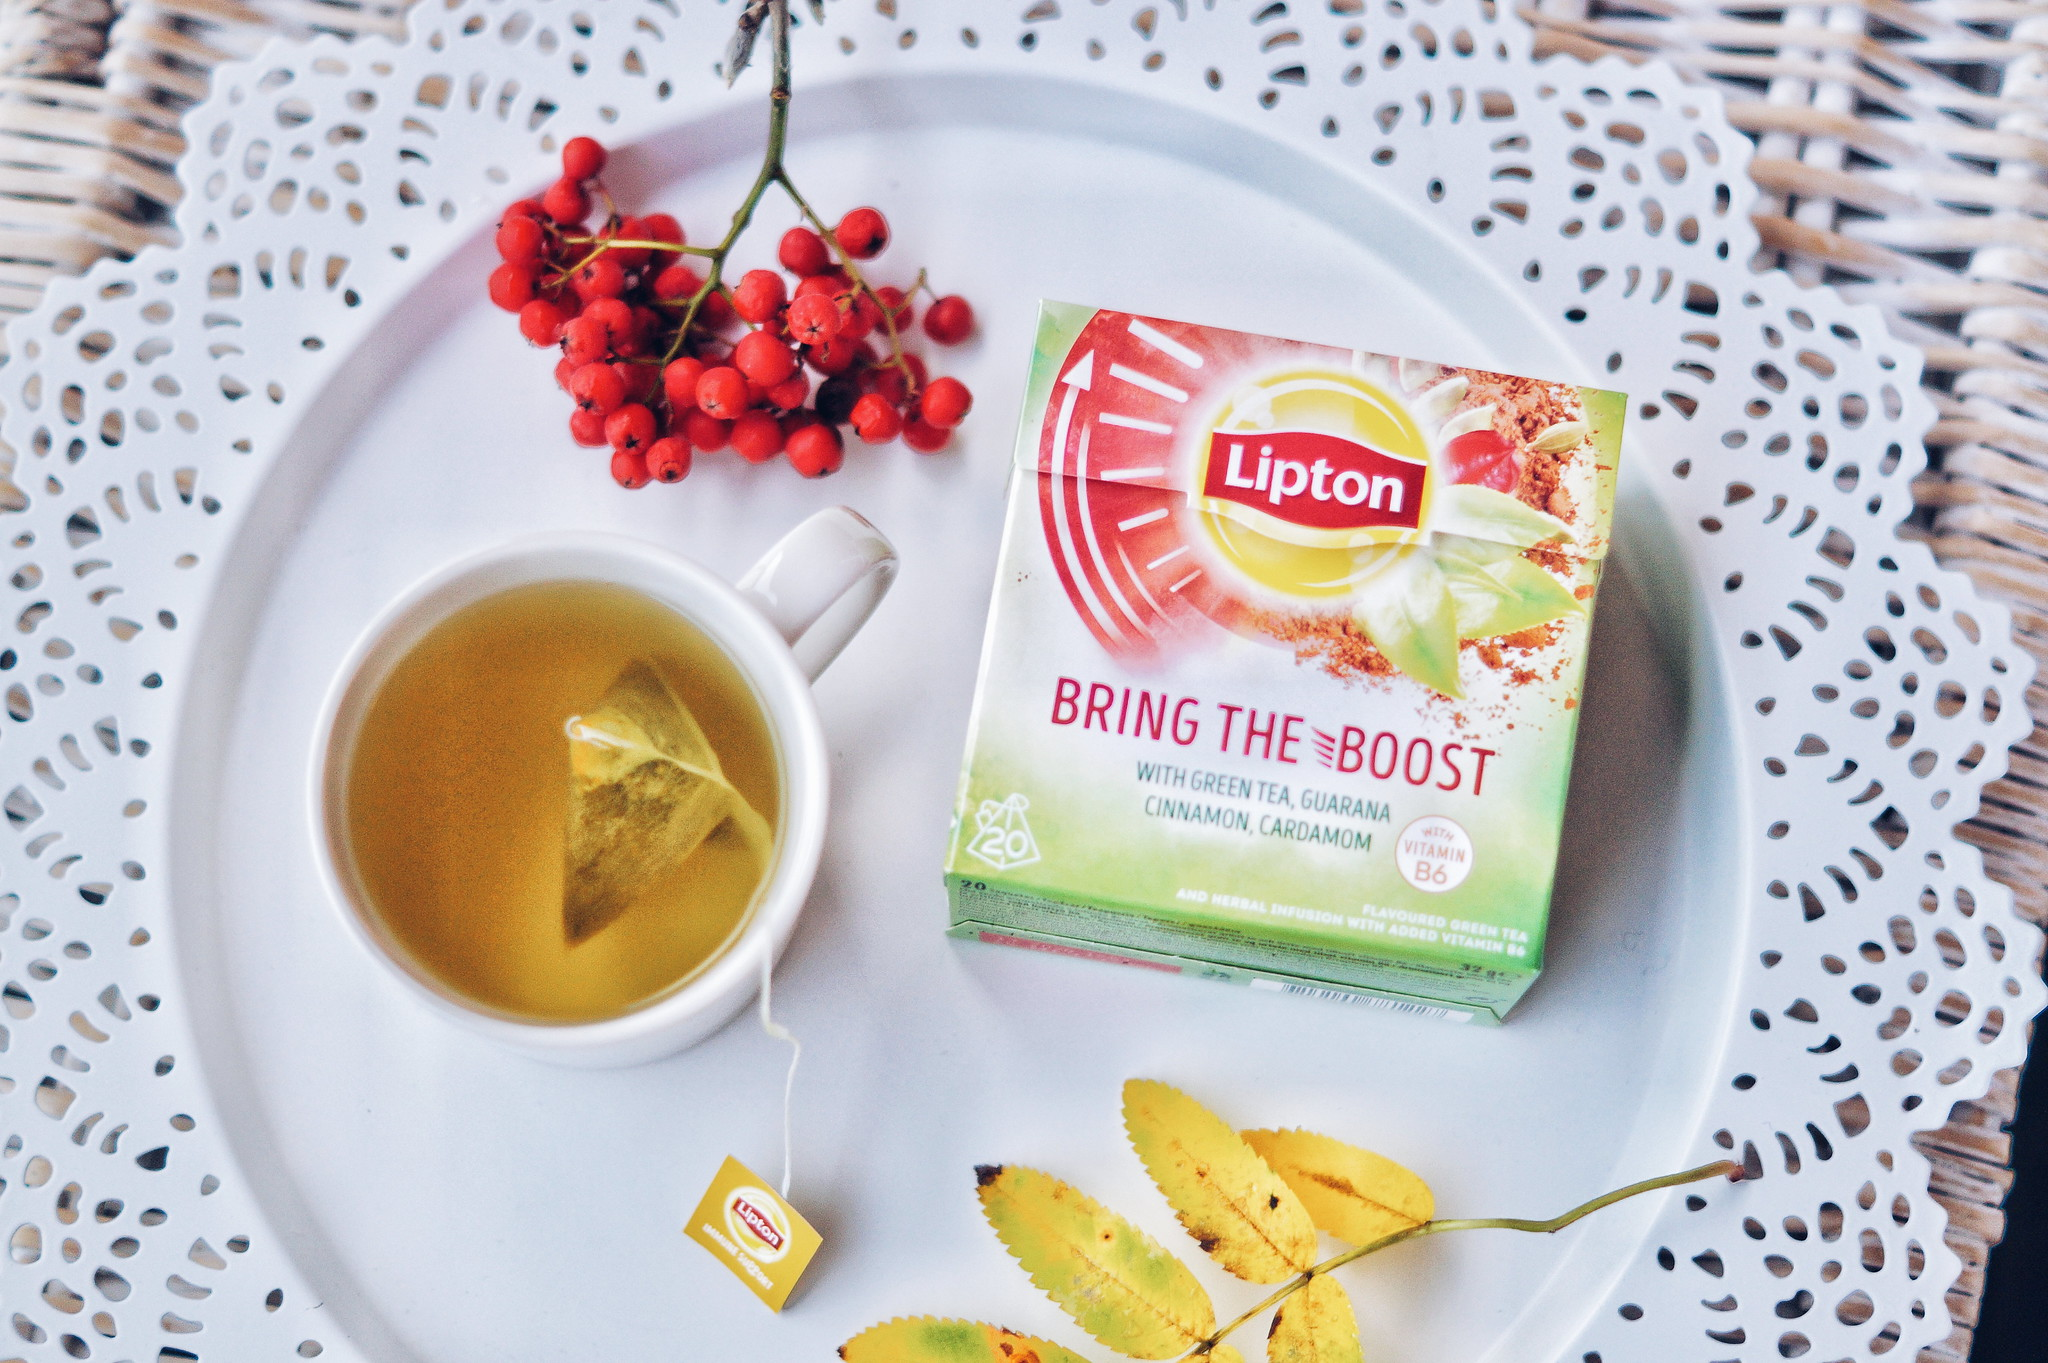 lipton-bring-the-boost